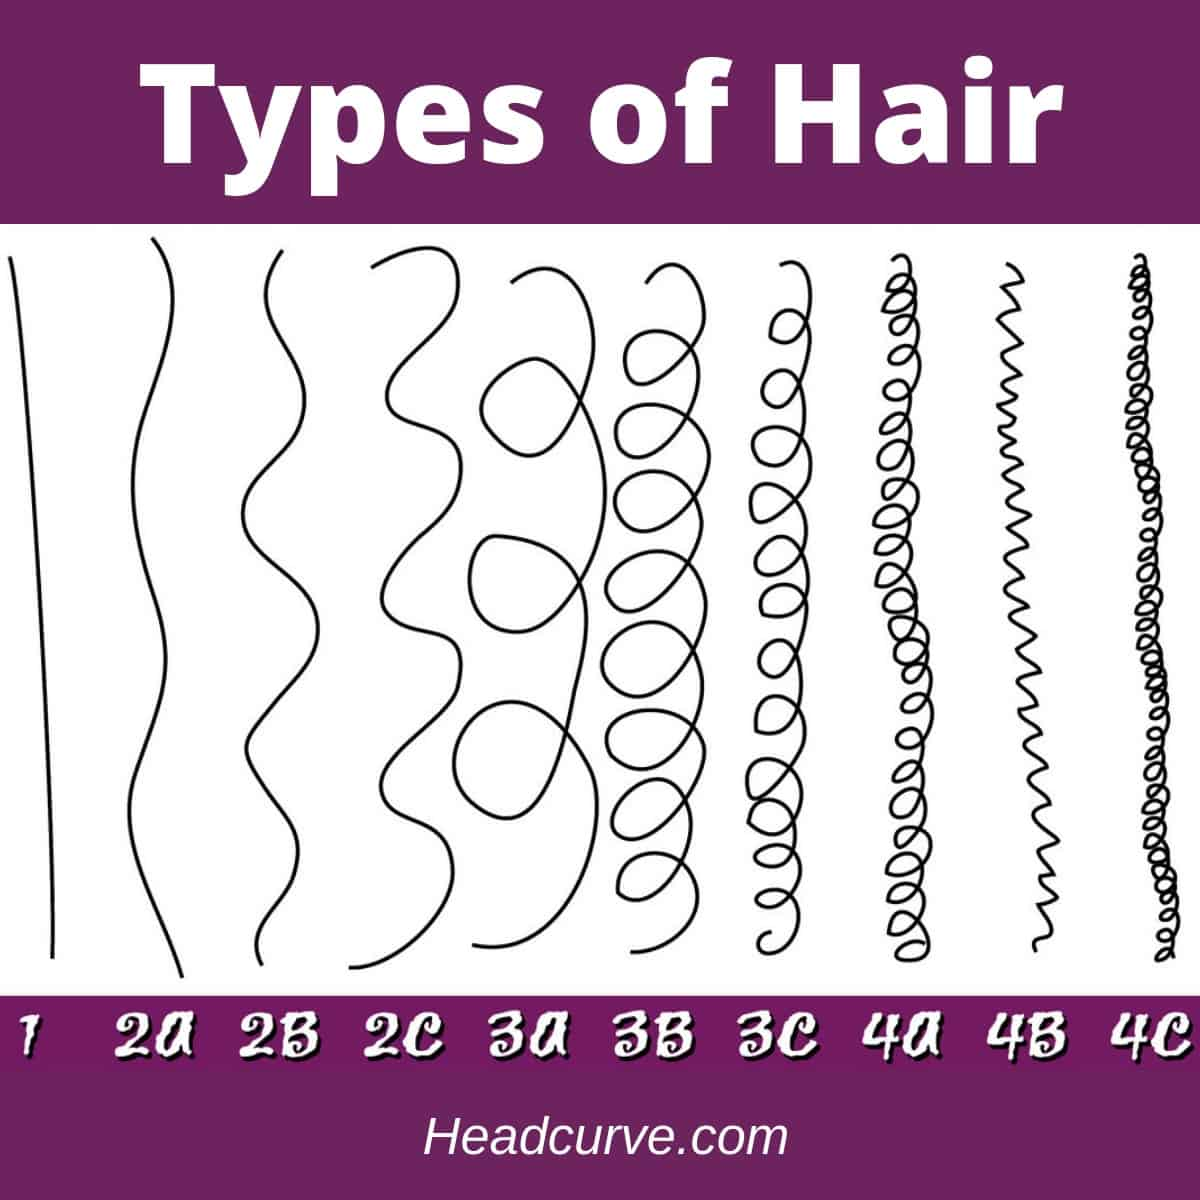 The different types of hair (chart).